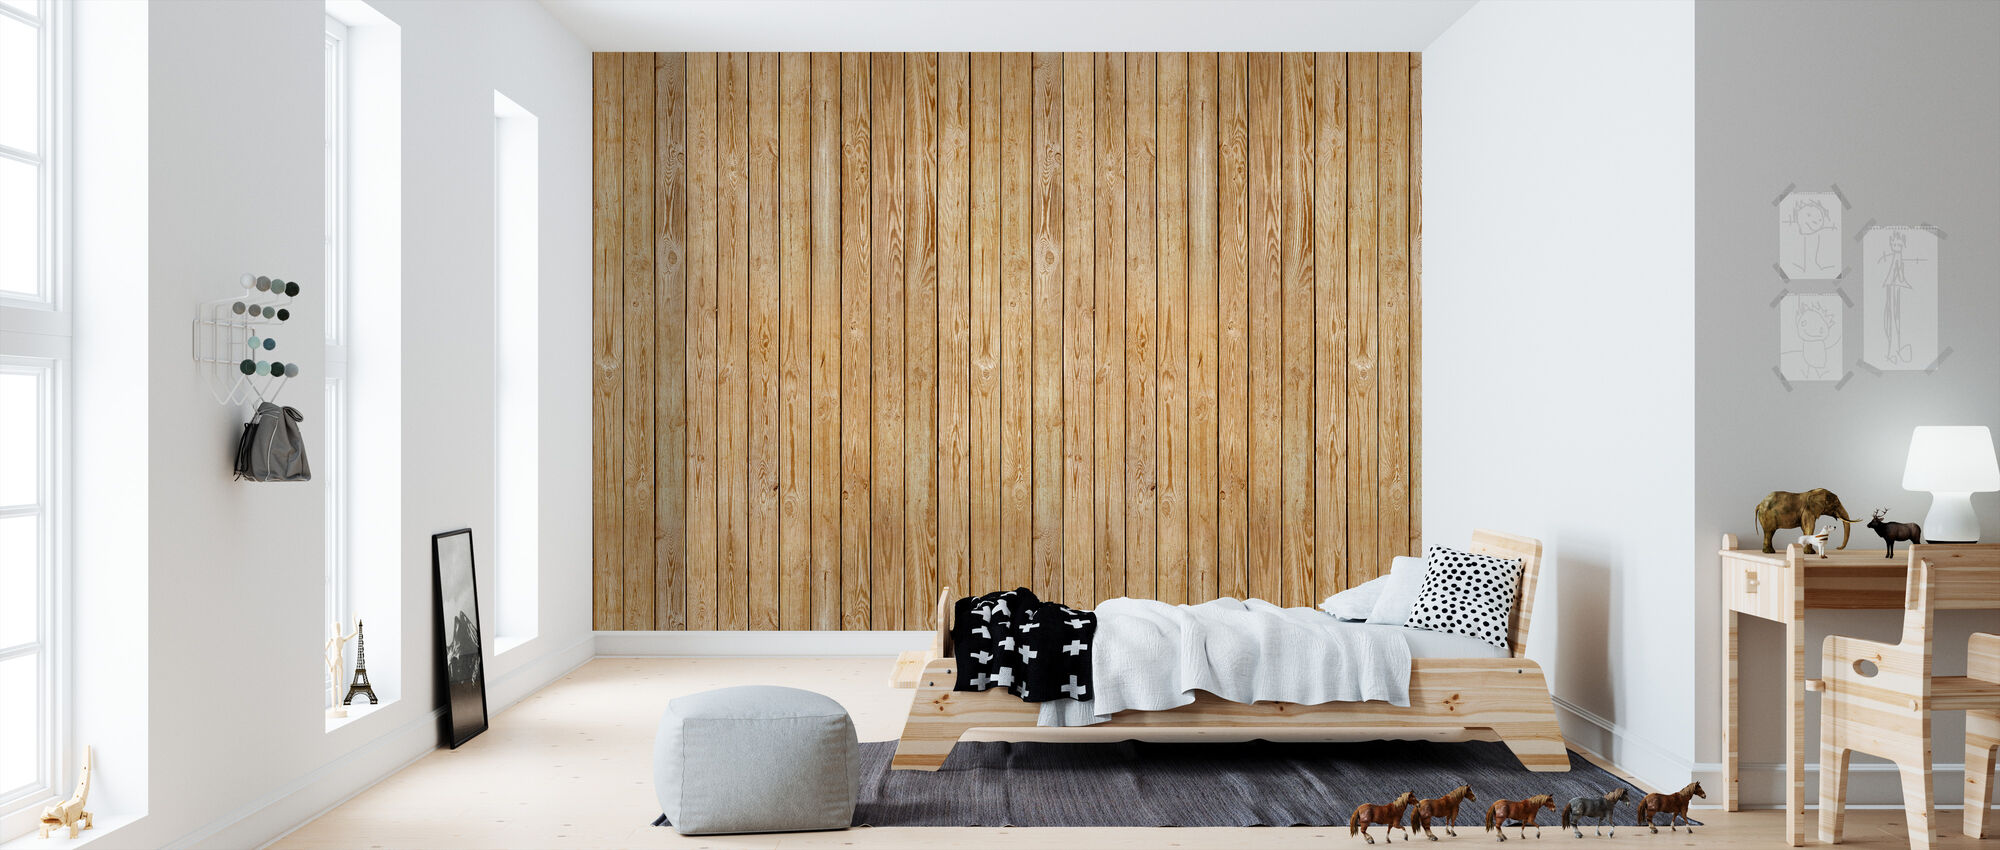 Wooden Plank Wall - Wallpaper - Kids Room